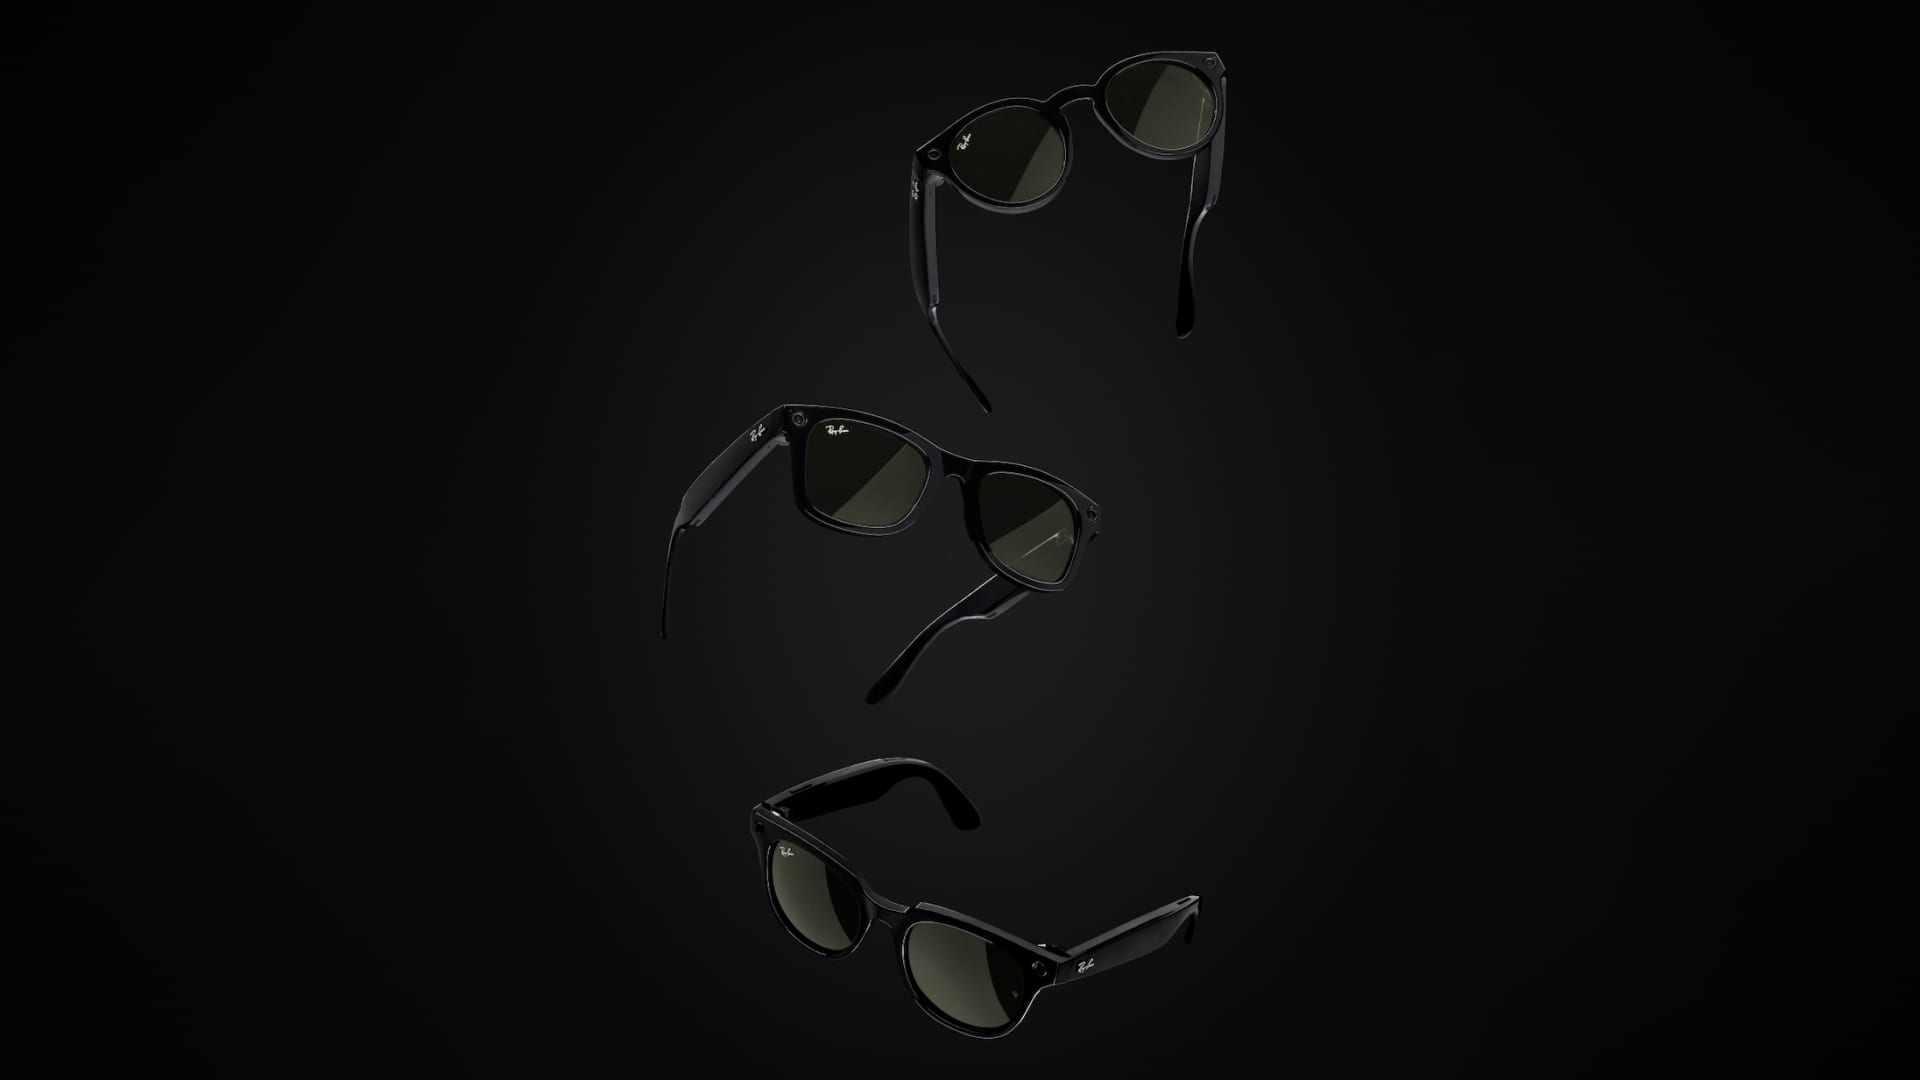 The Ray Ban Stories glasses, which start at $299, come equipped with Facebook technology that allows users to take photos and record videos with voice commands or by pressing a button on the right temple of the glasses.